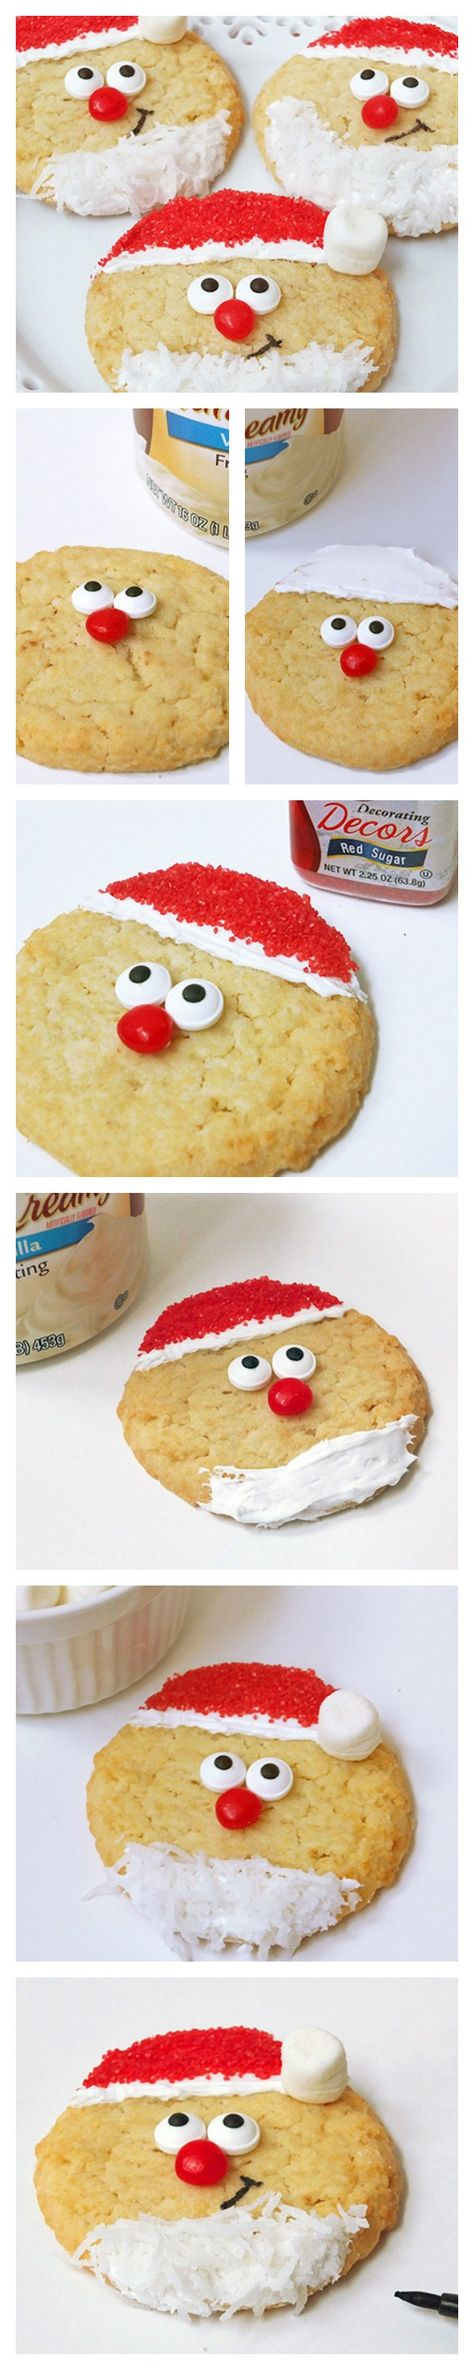 Santa sugar cookies that are cute and beyond easy to make.